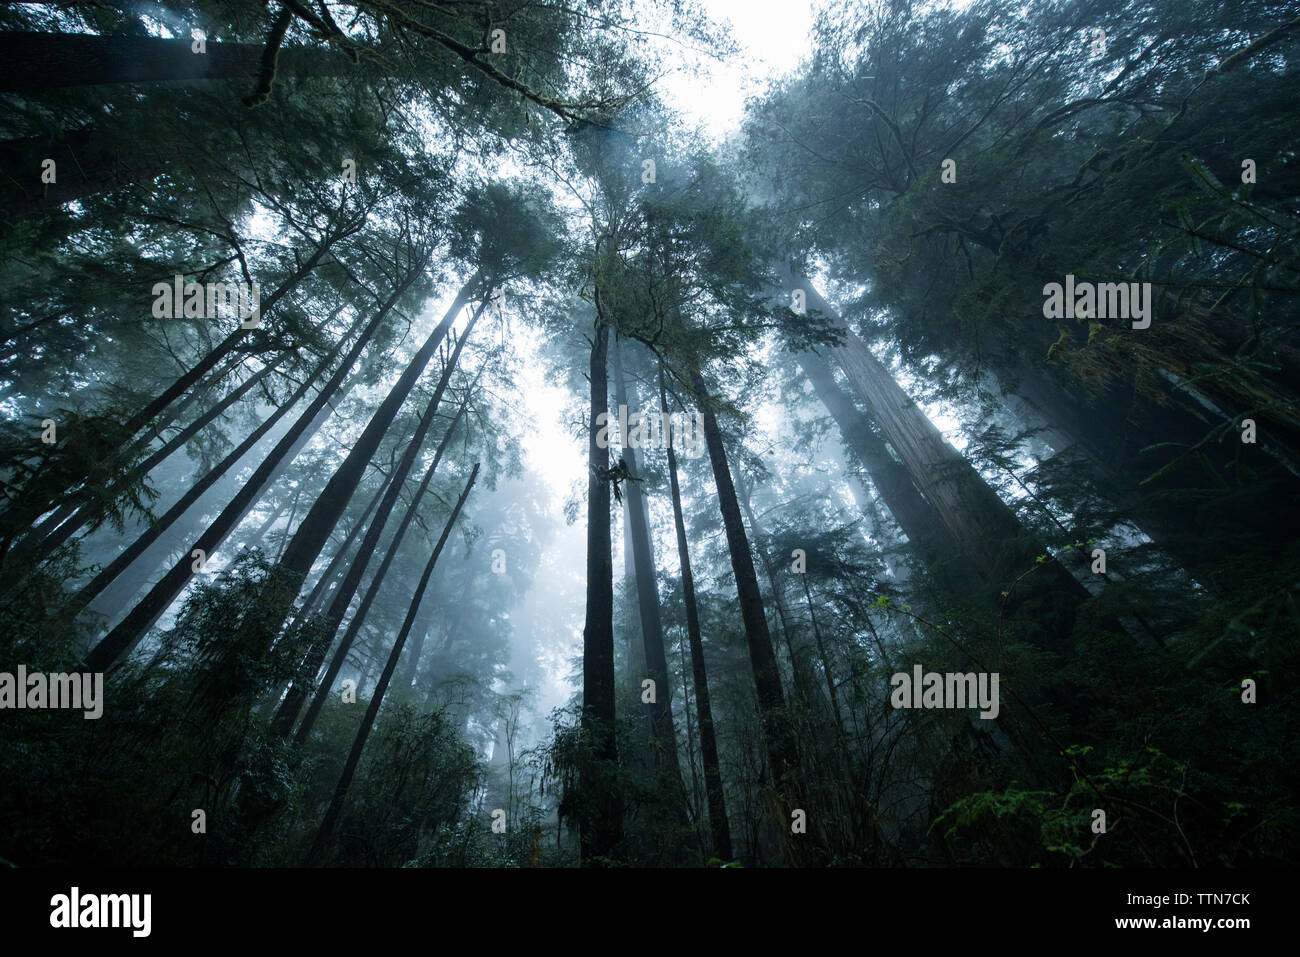 Low angle view of trees at Jedediah Smith Redwoods State Park during foggy weather - Stock Image